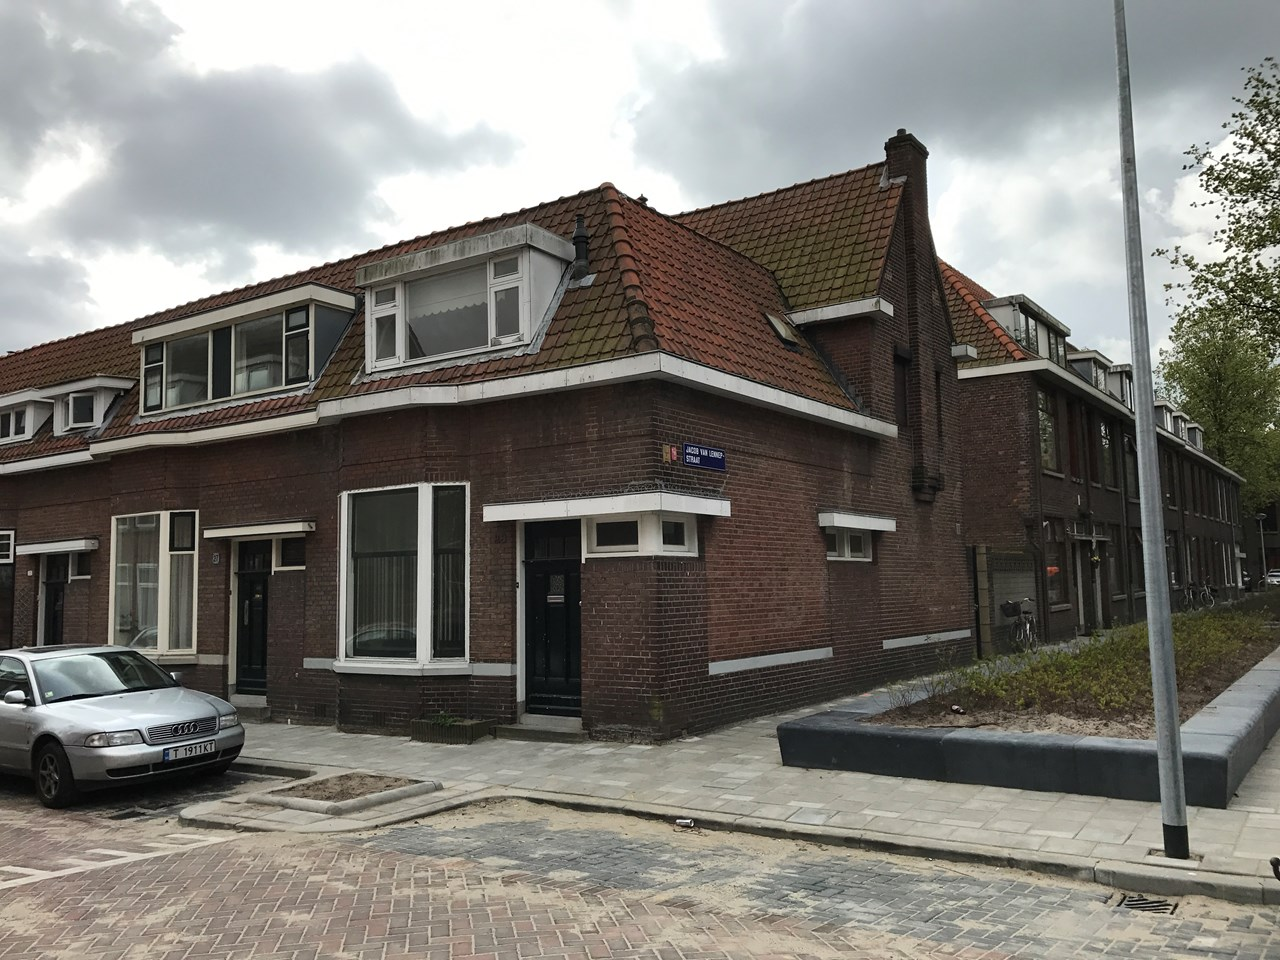 Filips Van Bourgondiestraat